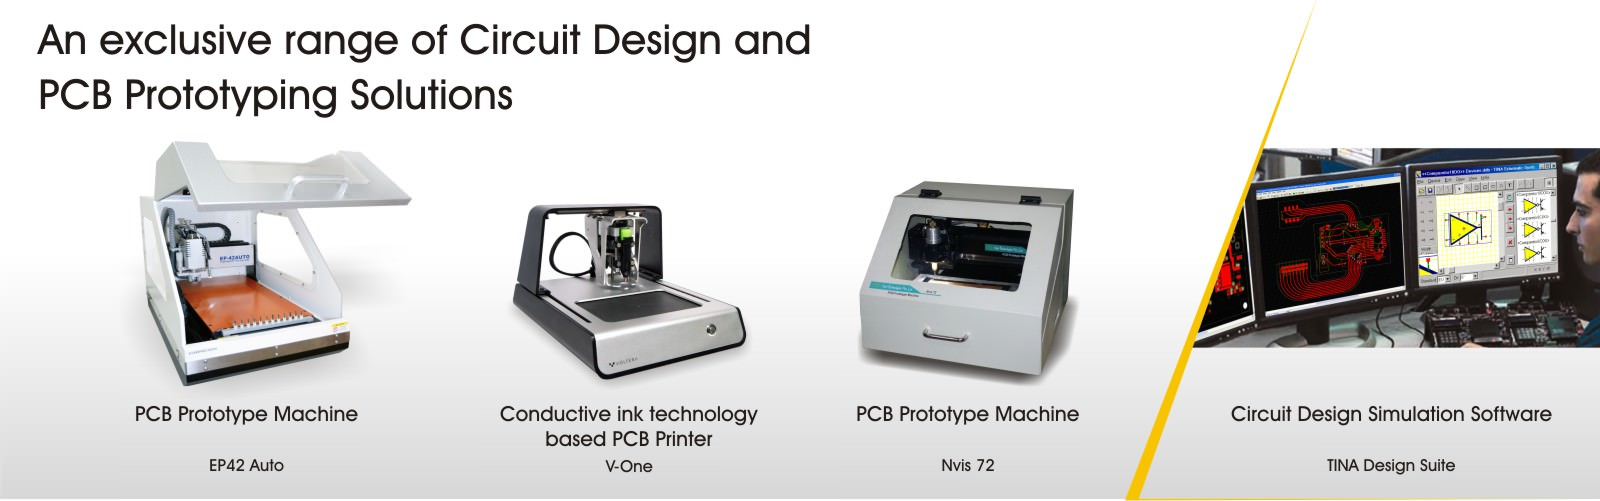 PCB Prototyping Solutions